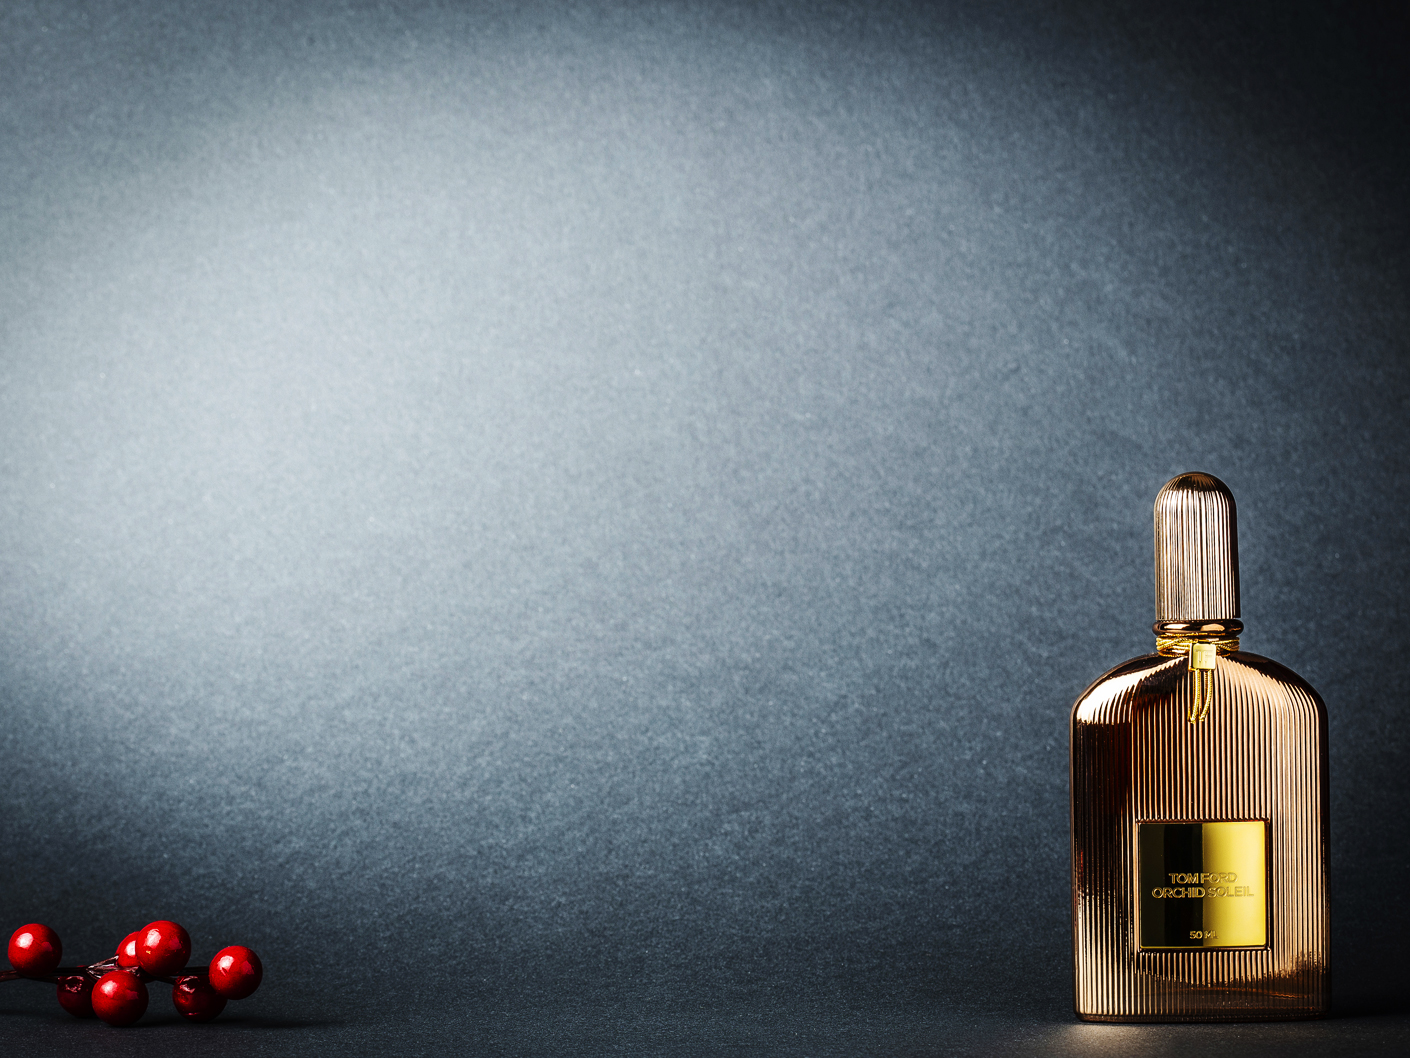 creative-advertising-product-photography-manchester-and-london